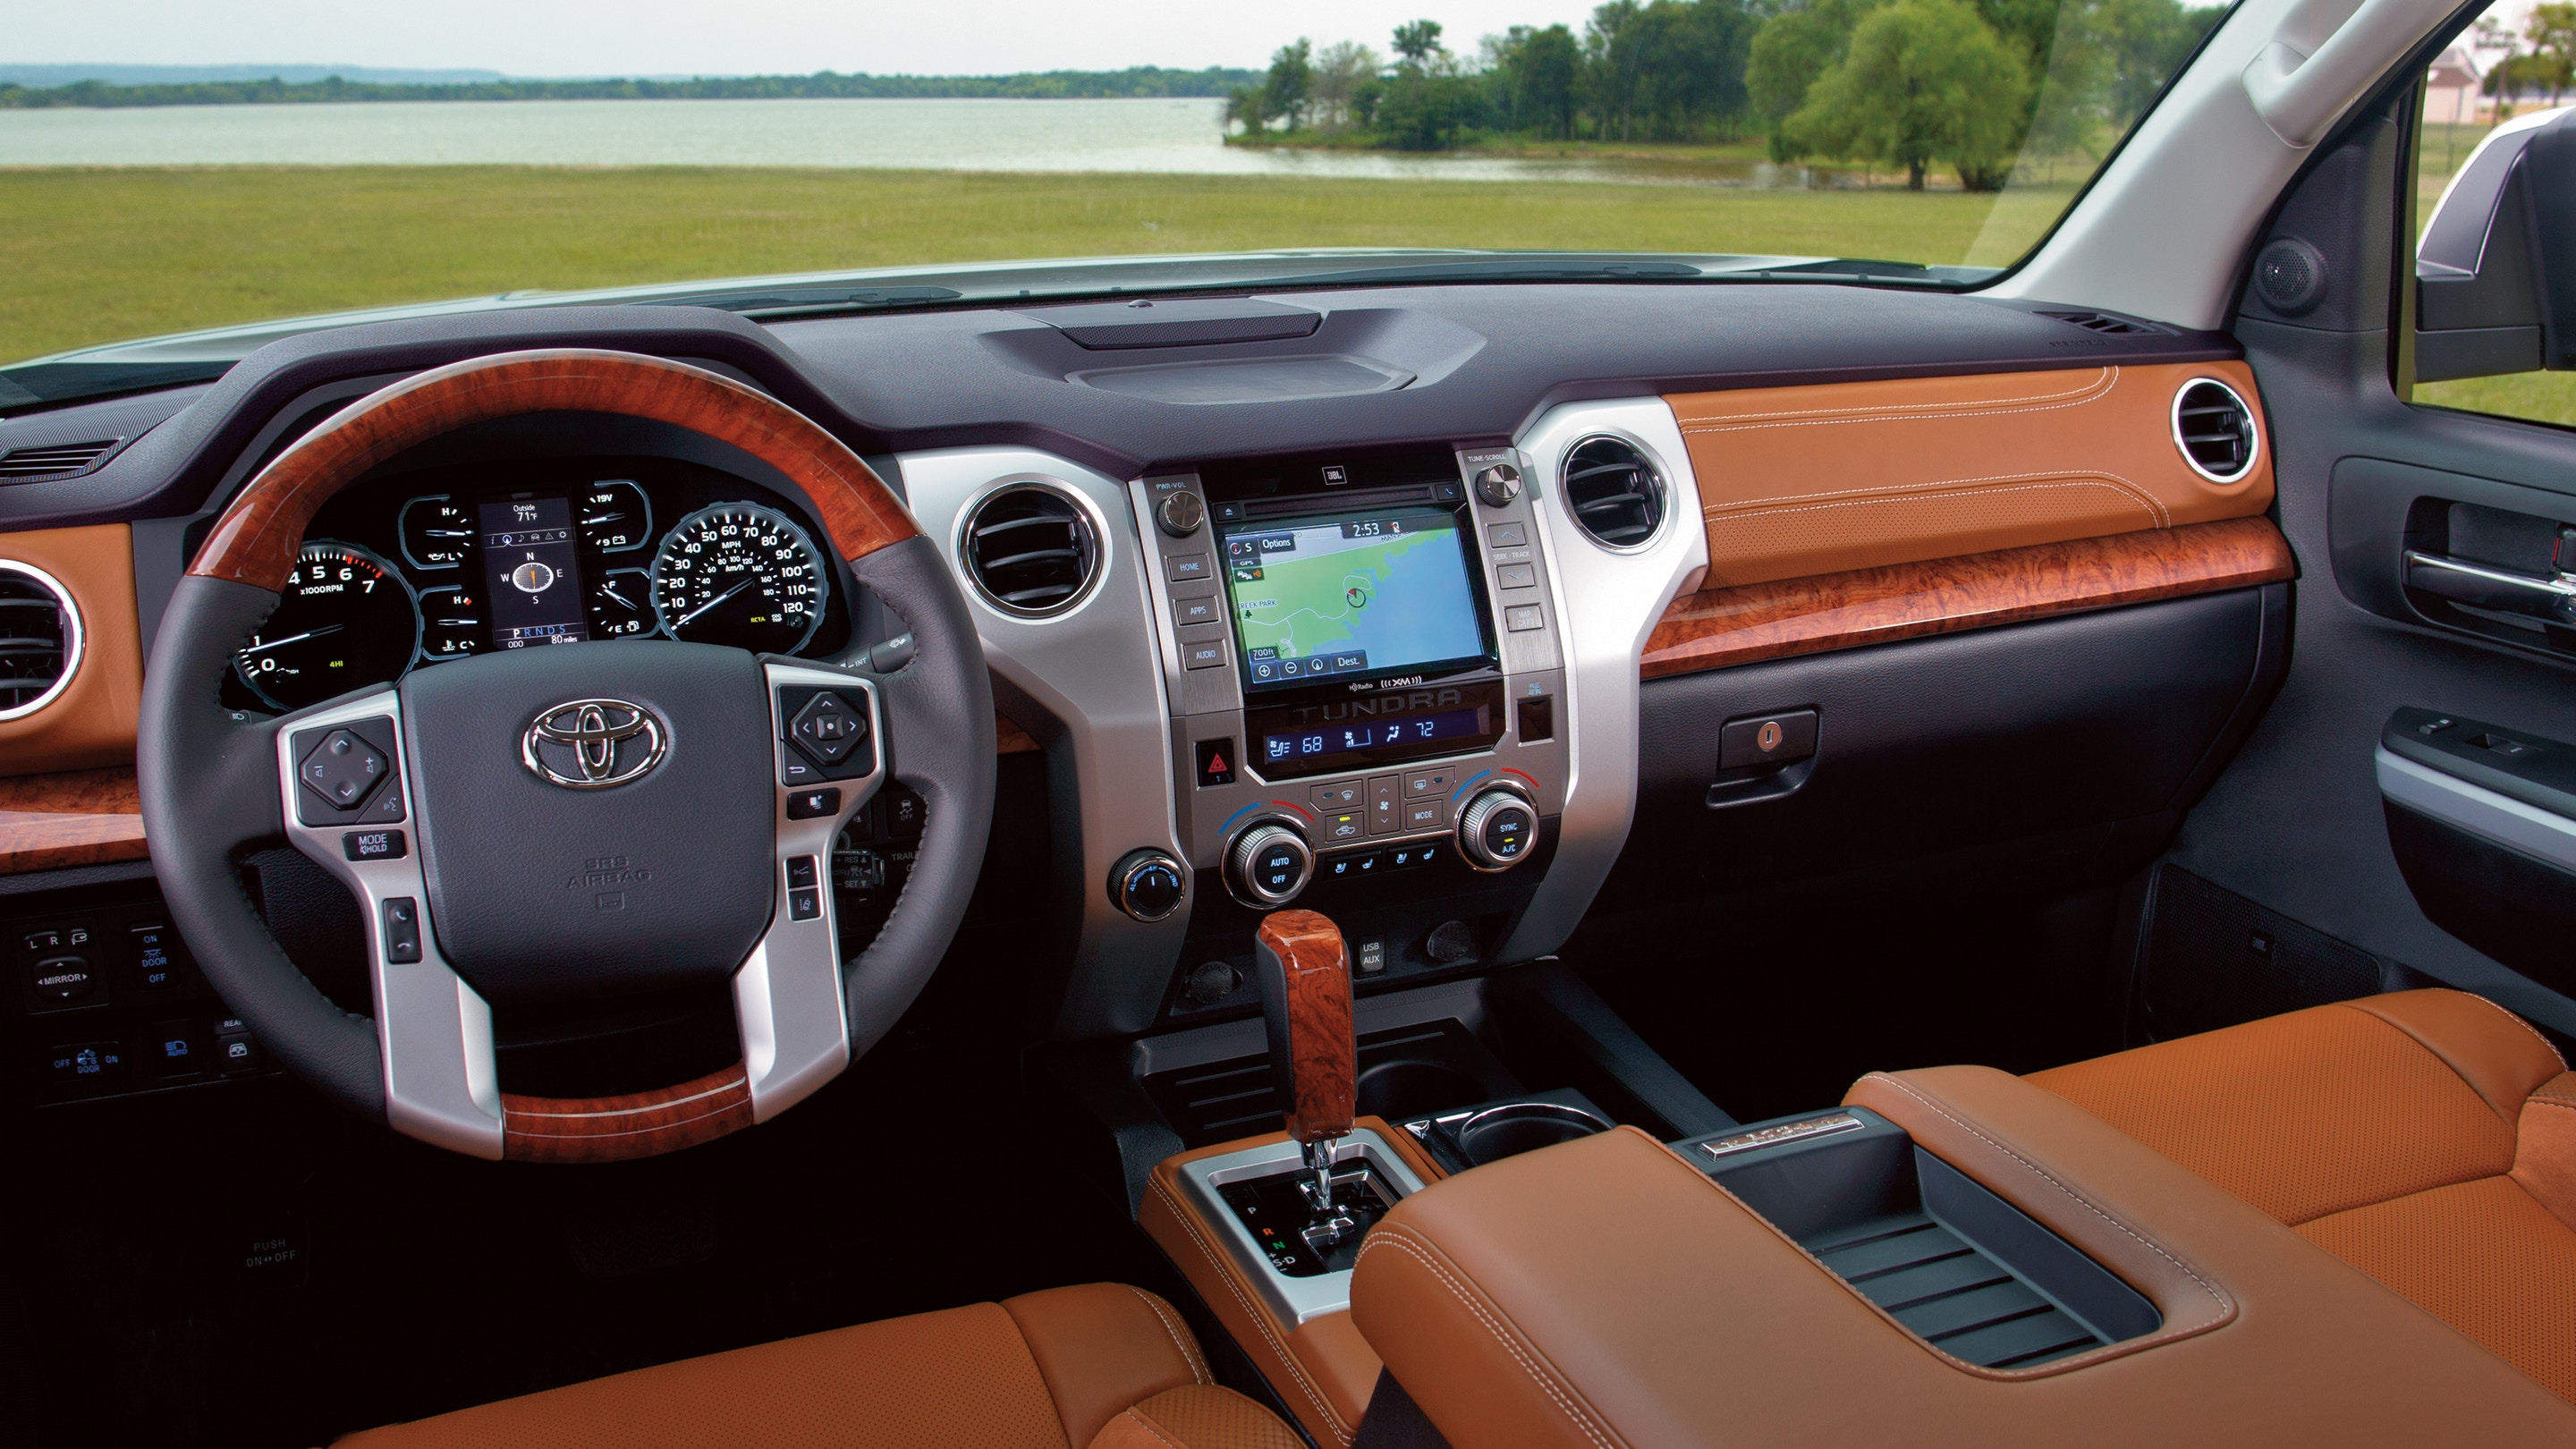 Interior of the 2019 Toyota Tundra